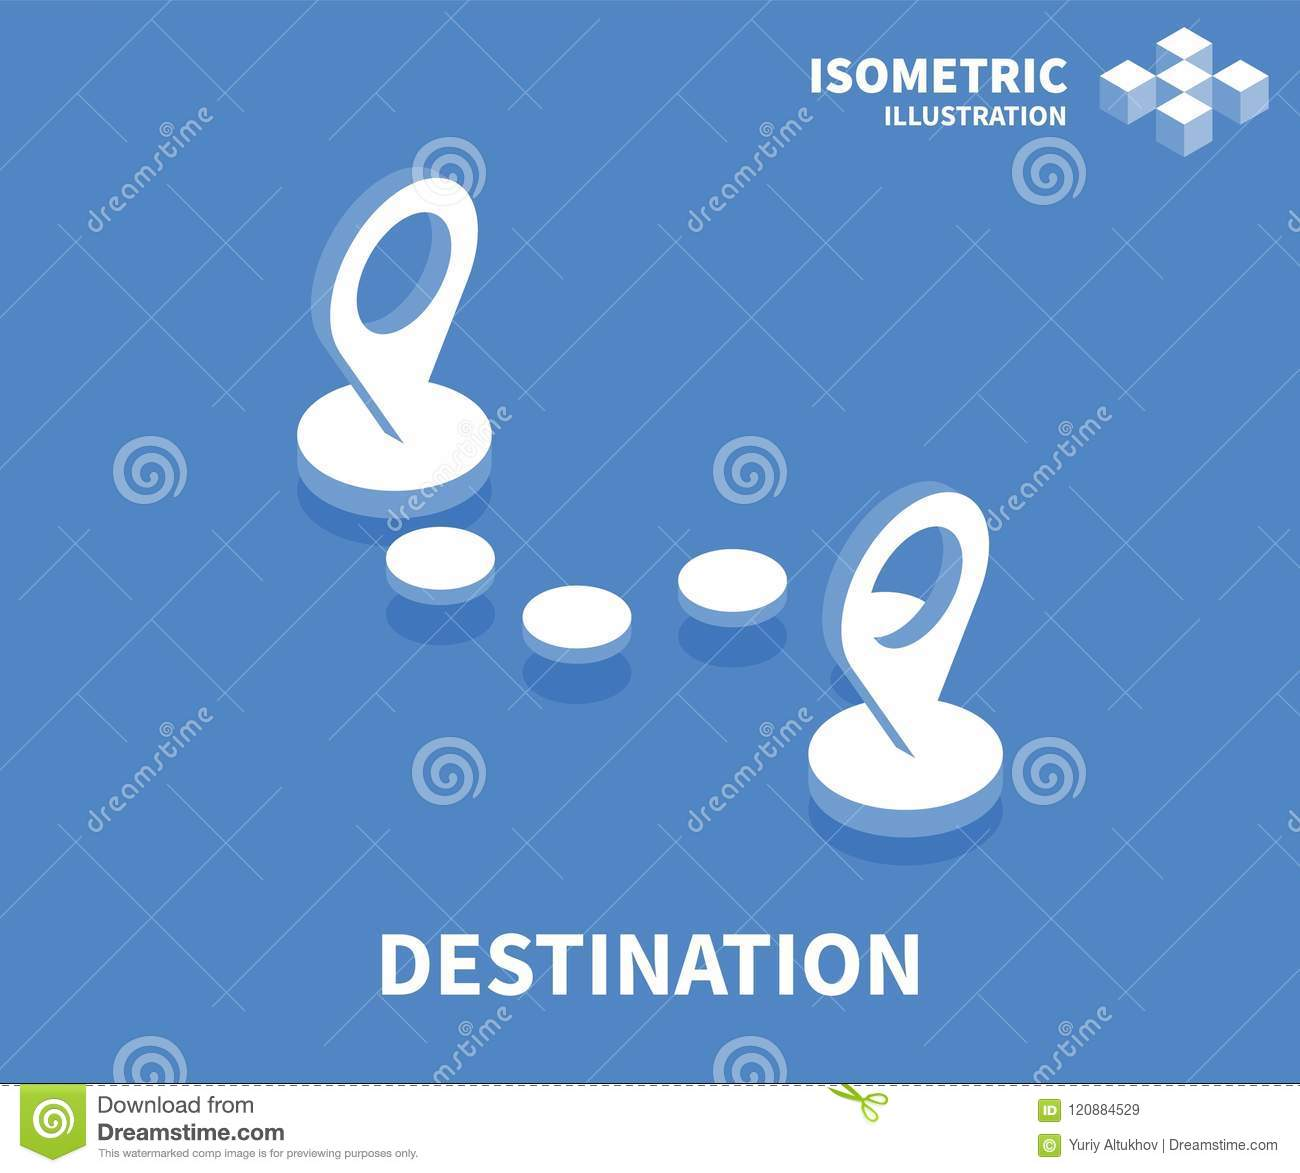 Destination icon isometric template for web design in flat 3d style isometric template for web design in flat 3d style vector illustration maxwellsz